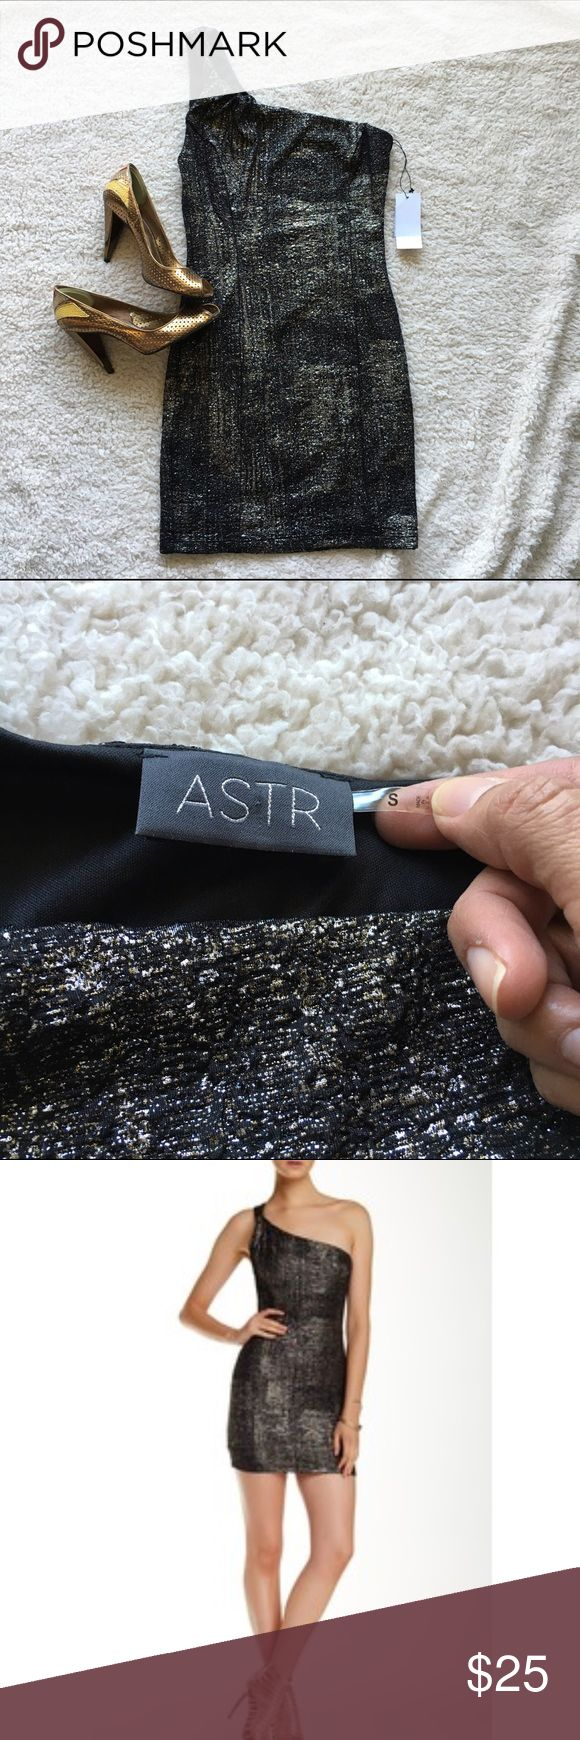 "NWT: ASTR Metallic Bodycon Dress, sz S (fits XS) NWT: ASTR Metallic Bodycon Dress in brand new condition from a smoke-free, pet-free home. Unstretched measurements: Bust: 15"", Waist: 12"", Hips: 16"", Length: 31"". Size: S (fits XS) ASTR Dresses Mini"